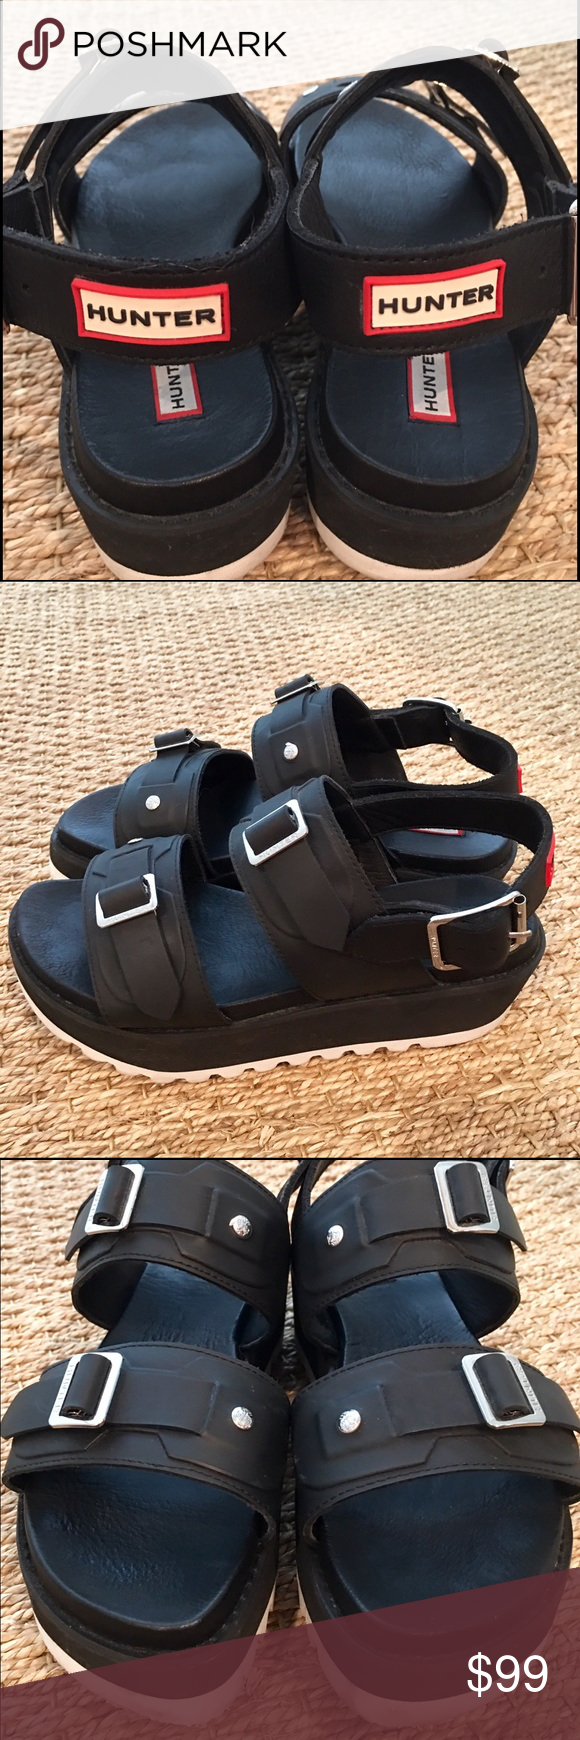 273701f922f Hunter Double Buckle Platform Sandals I didn t even realize Hunter sold  other types of shoes. These are substantial